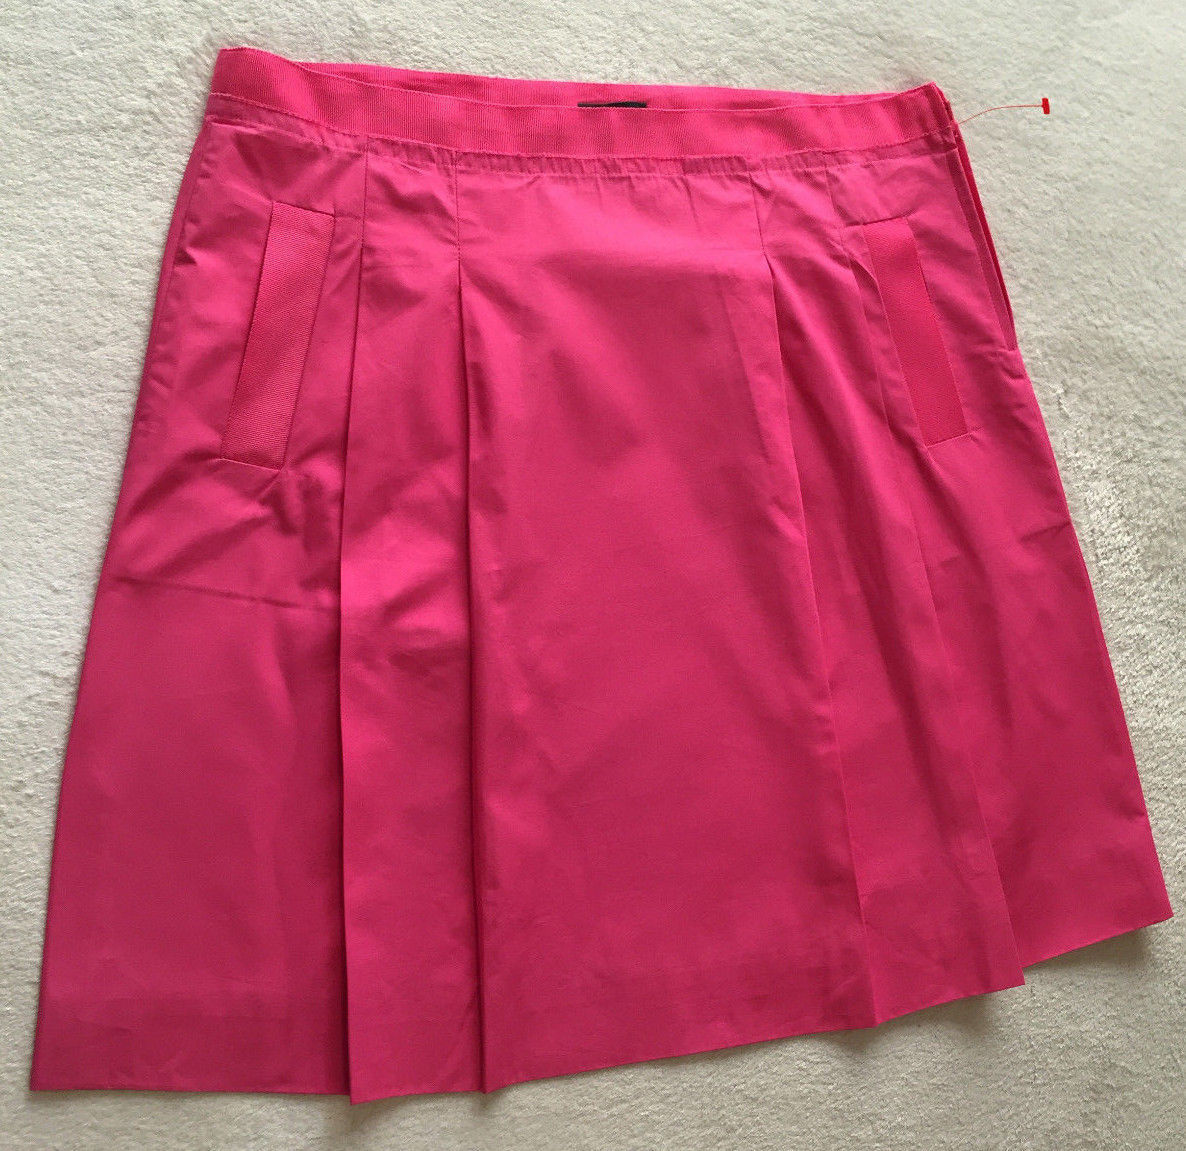 Primary image for NEW J.CREW Women Office Career Fuschia Pink 100% Cotton Pocket Pleats Skirt Sz 8